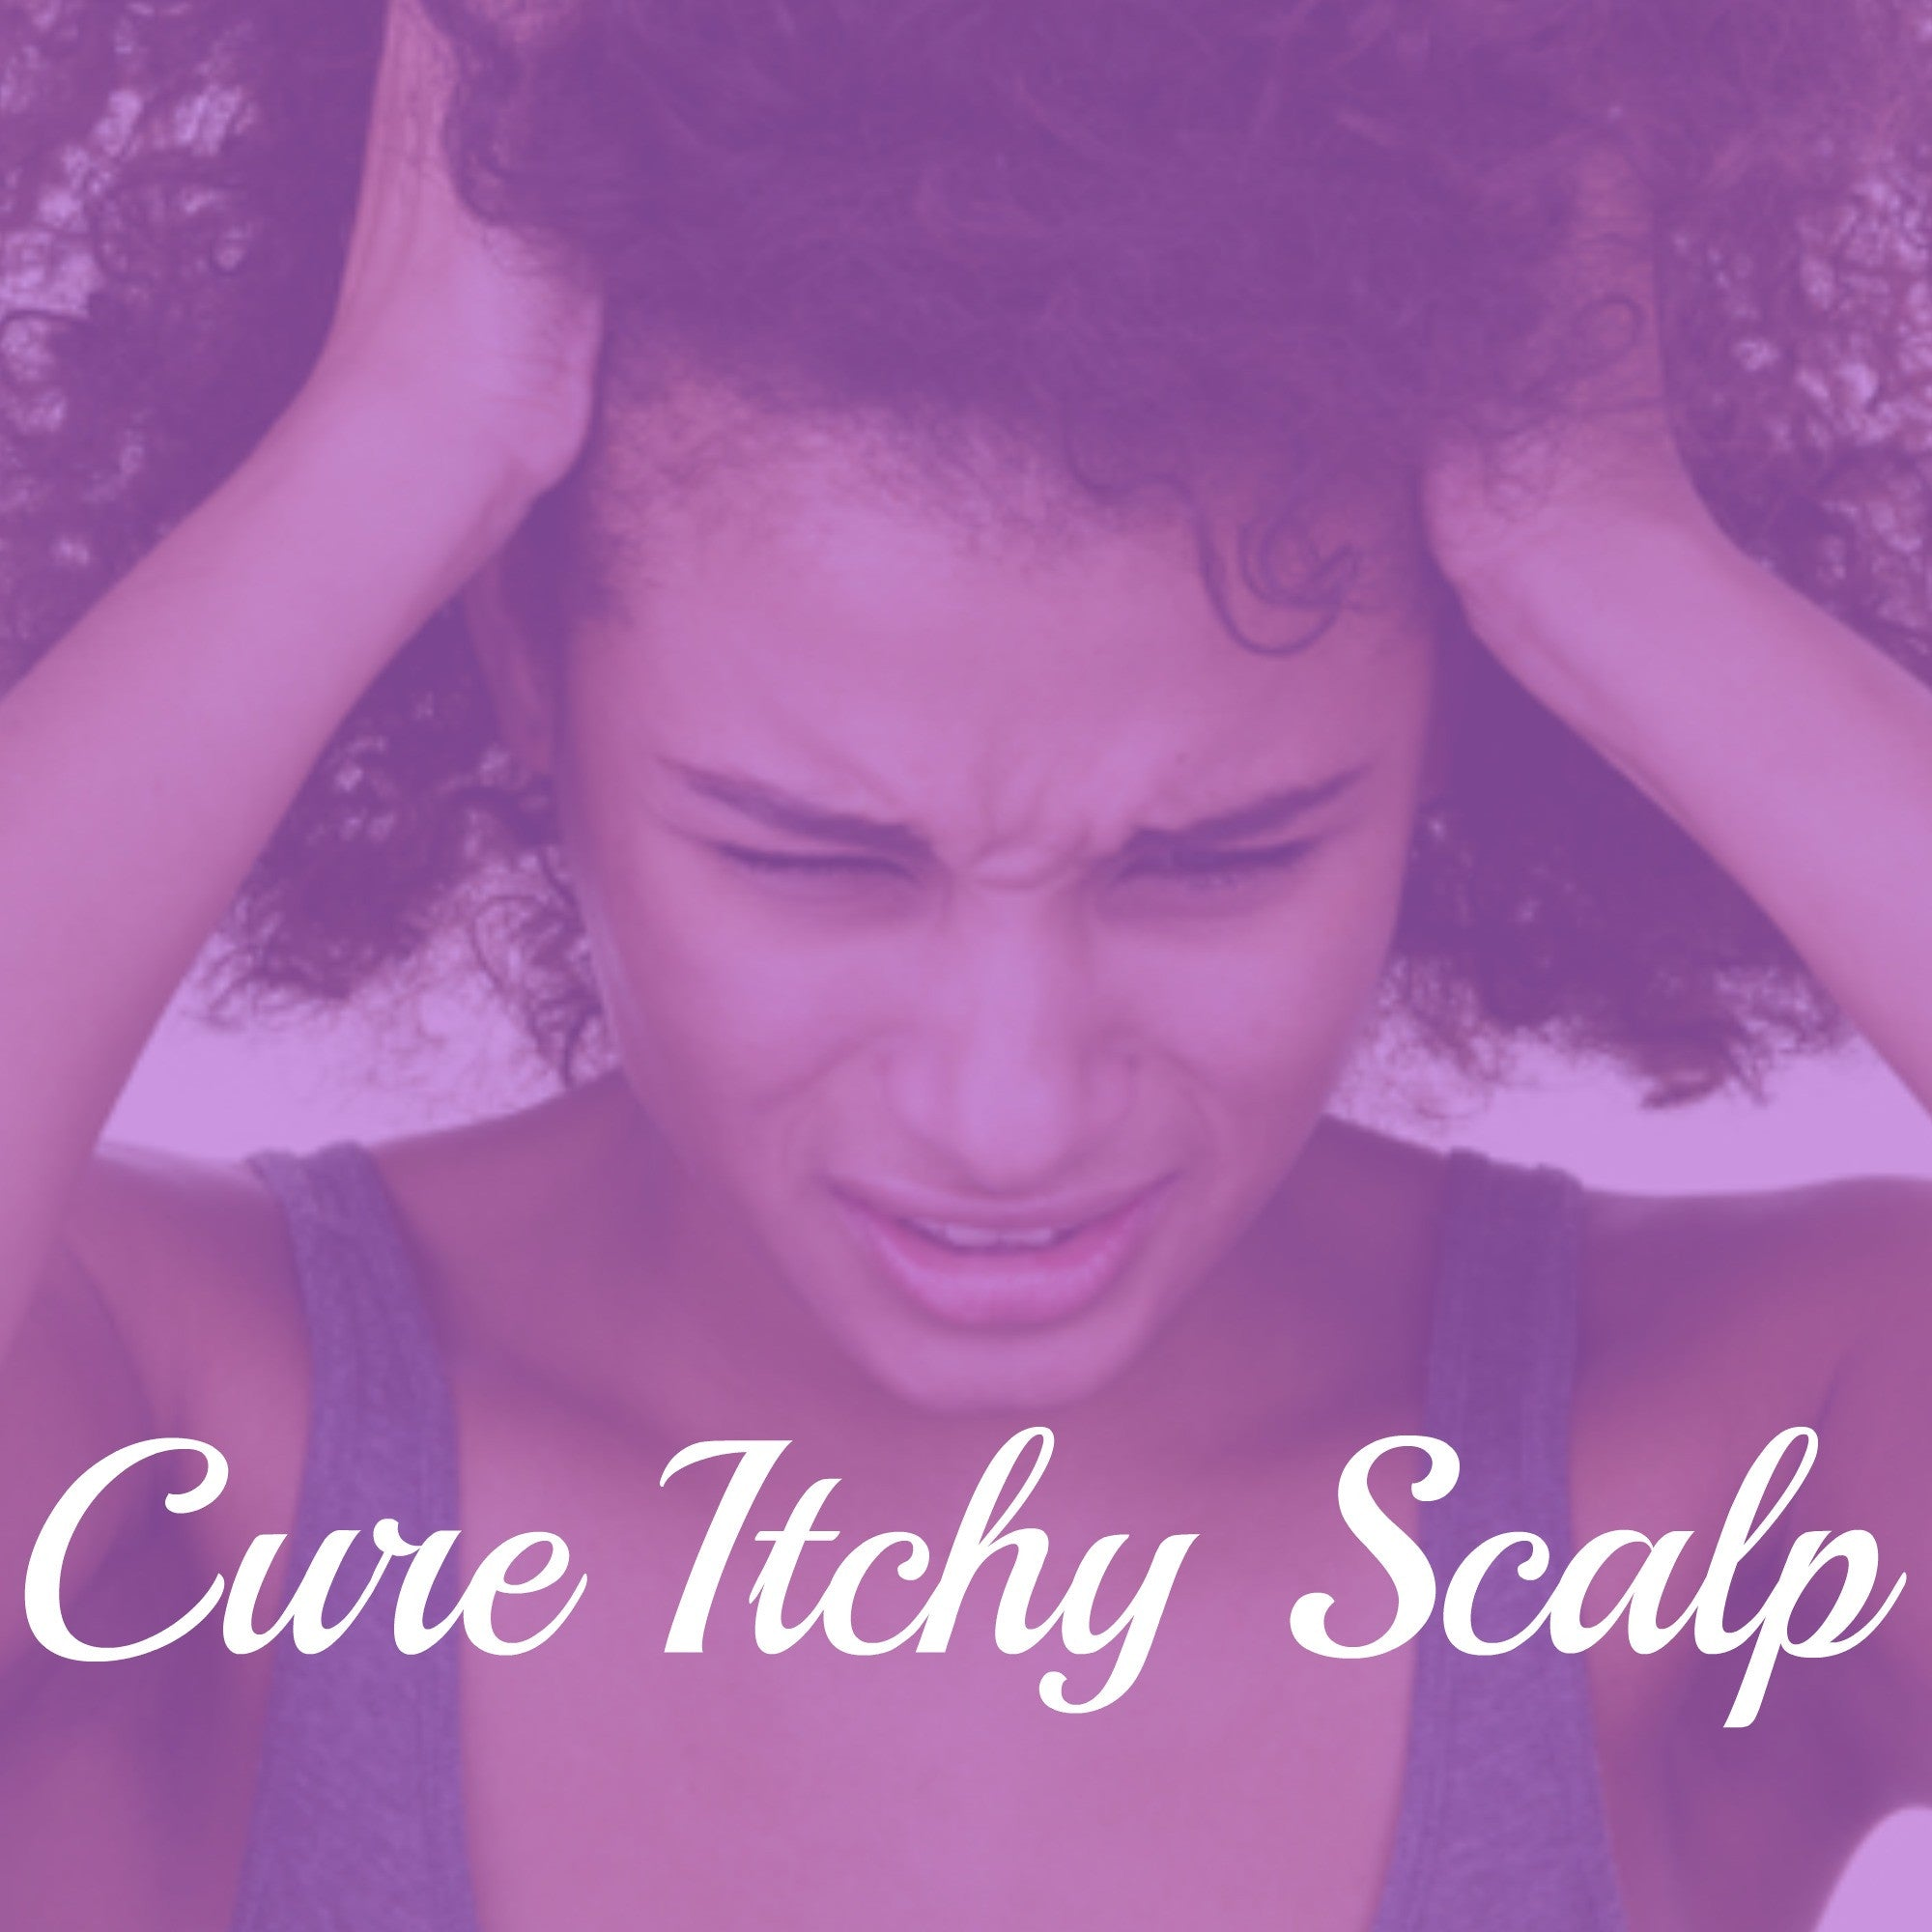 Tips to Cure Itchy Scalp